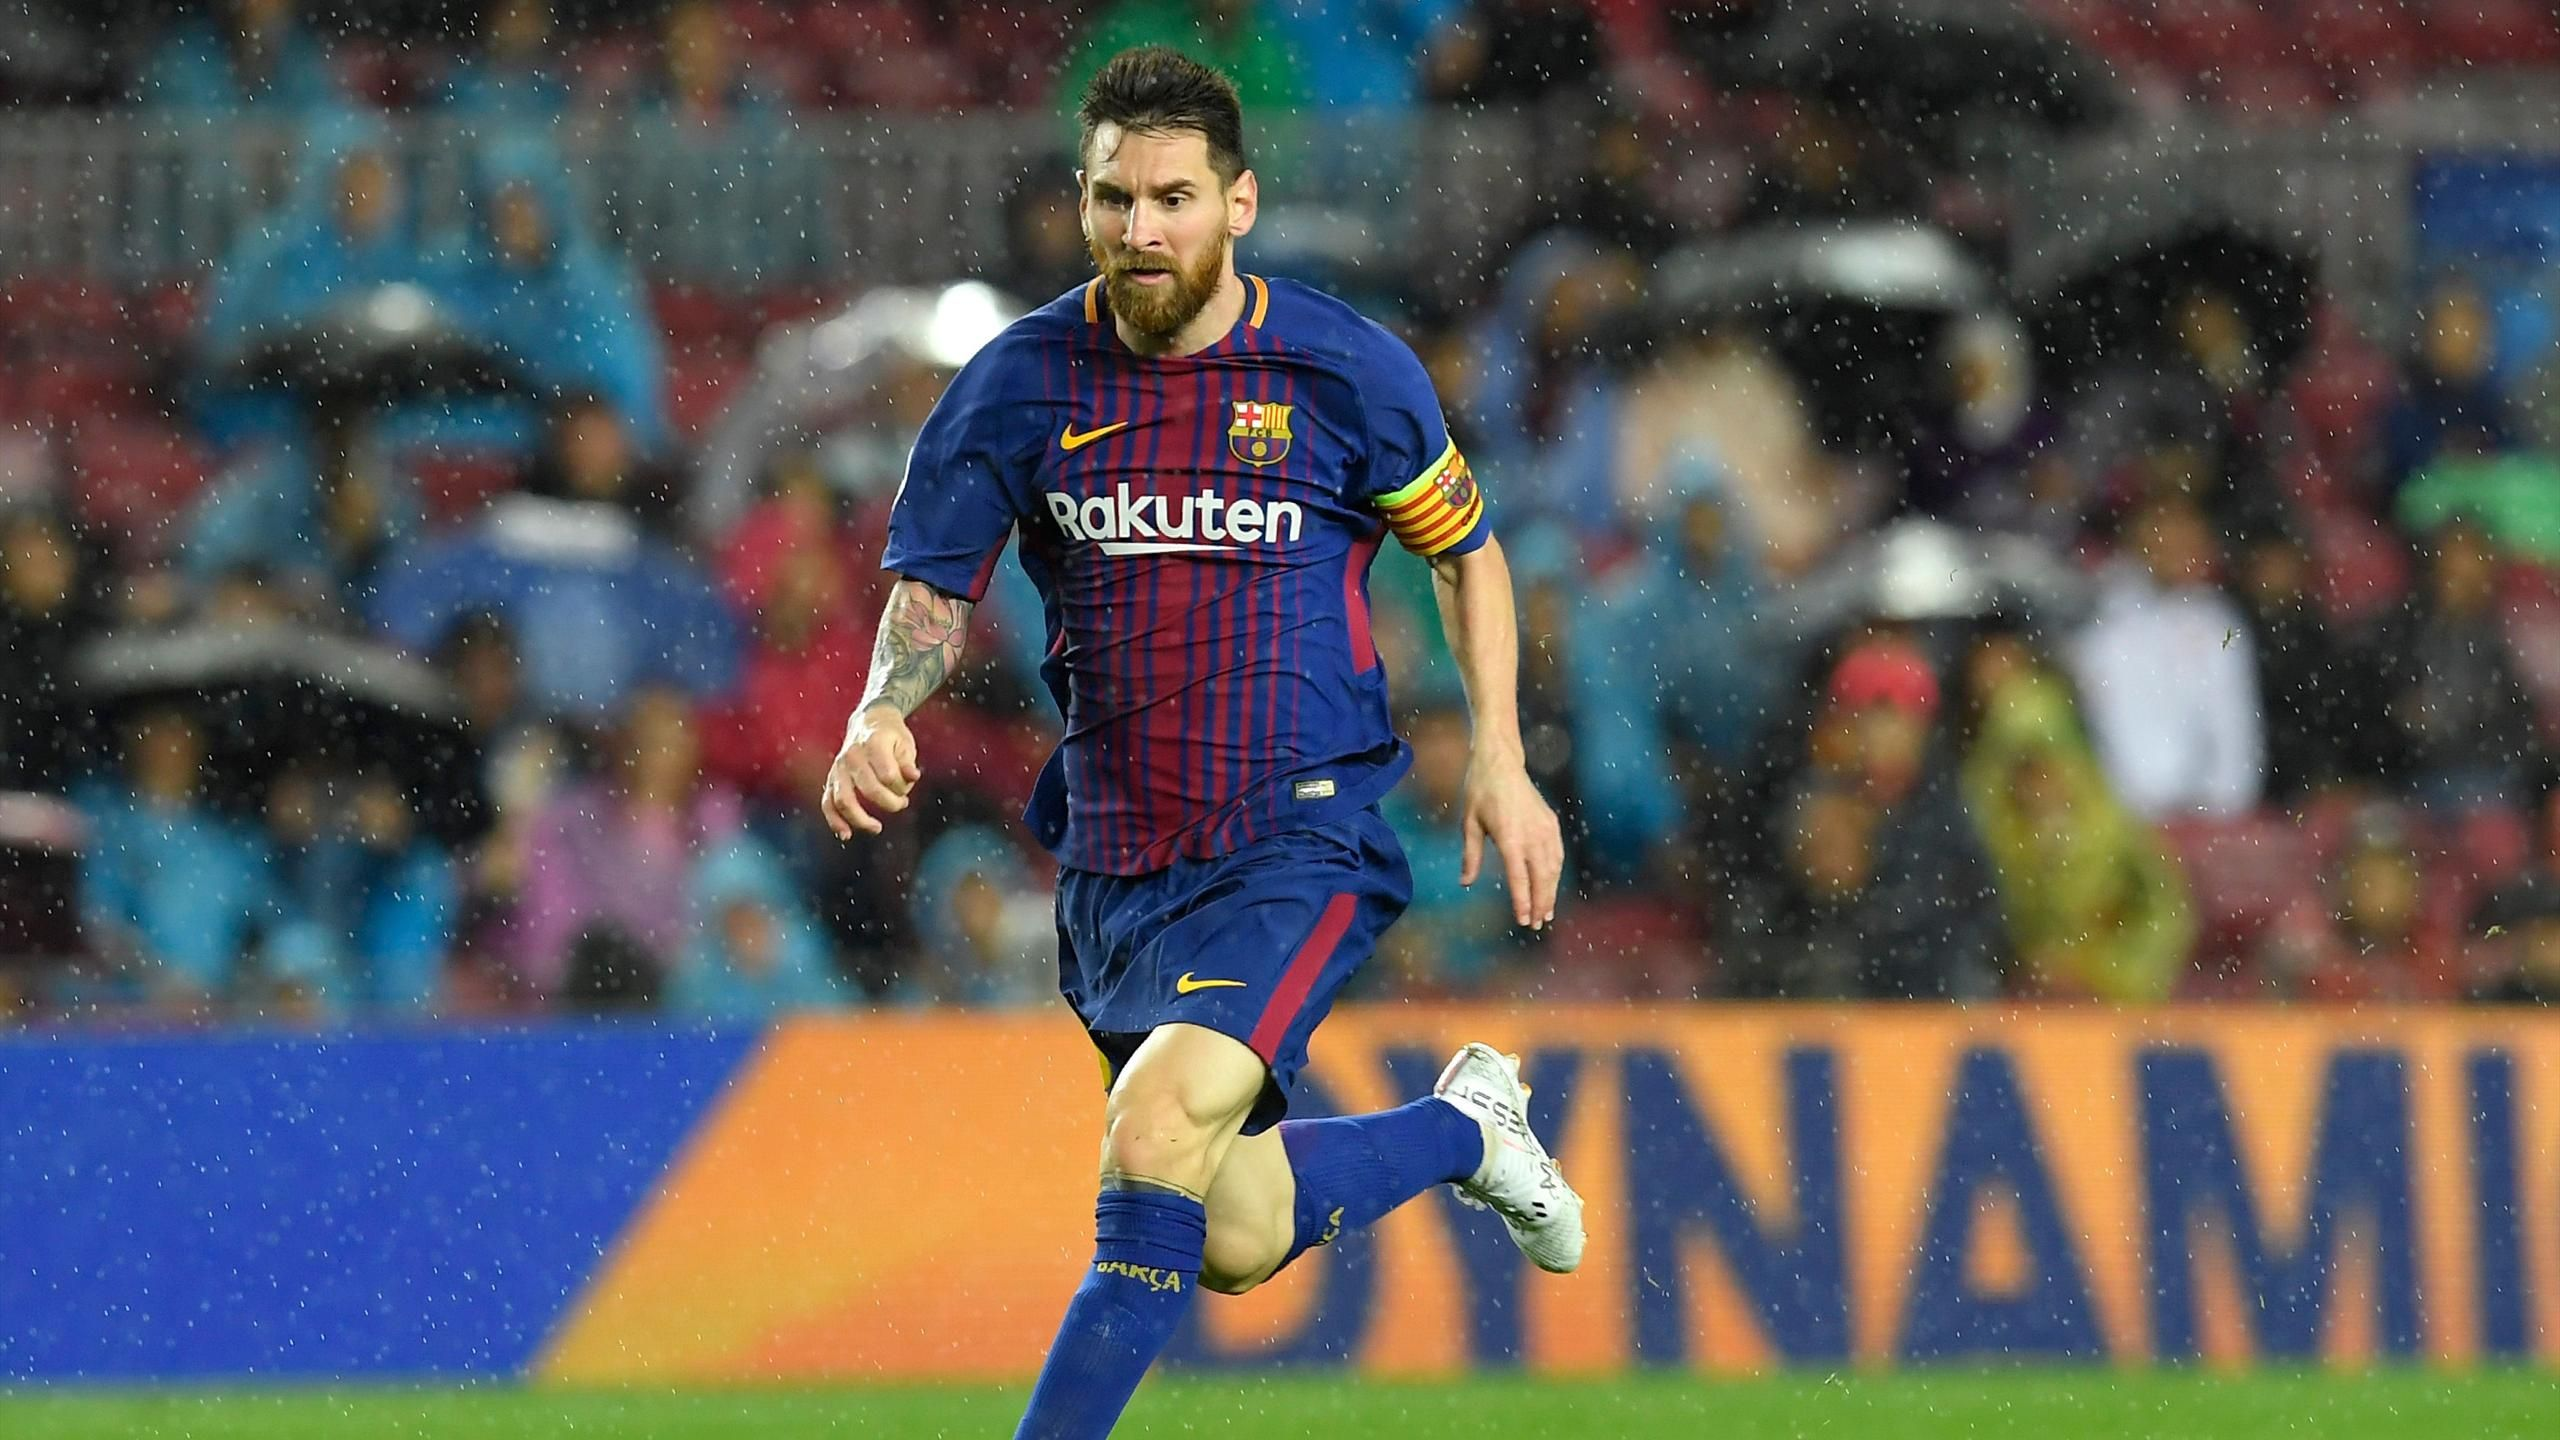 Lionel Messi for Barcelona in LaLiga this calendar year